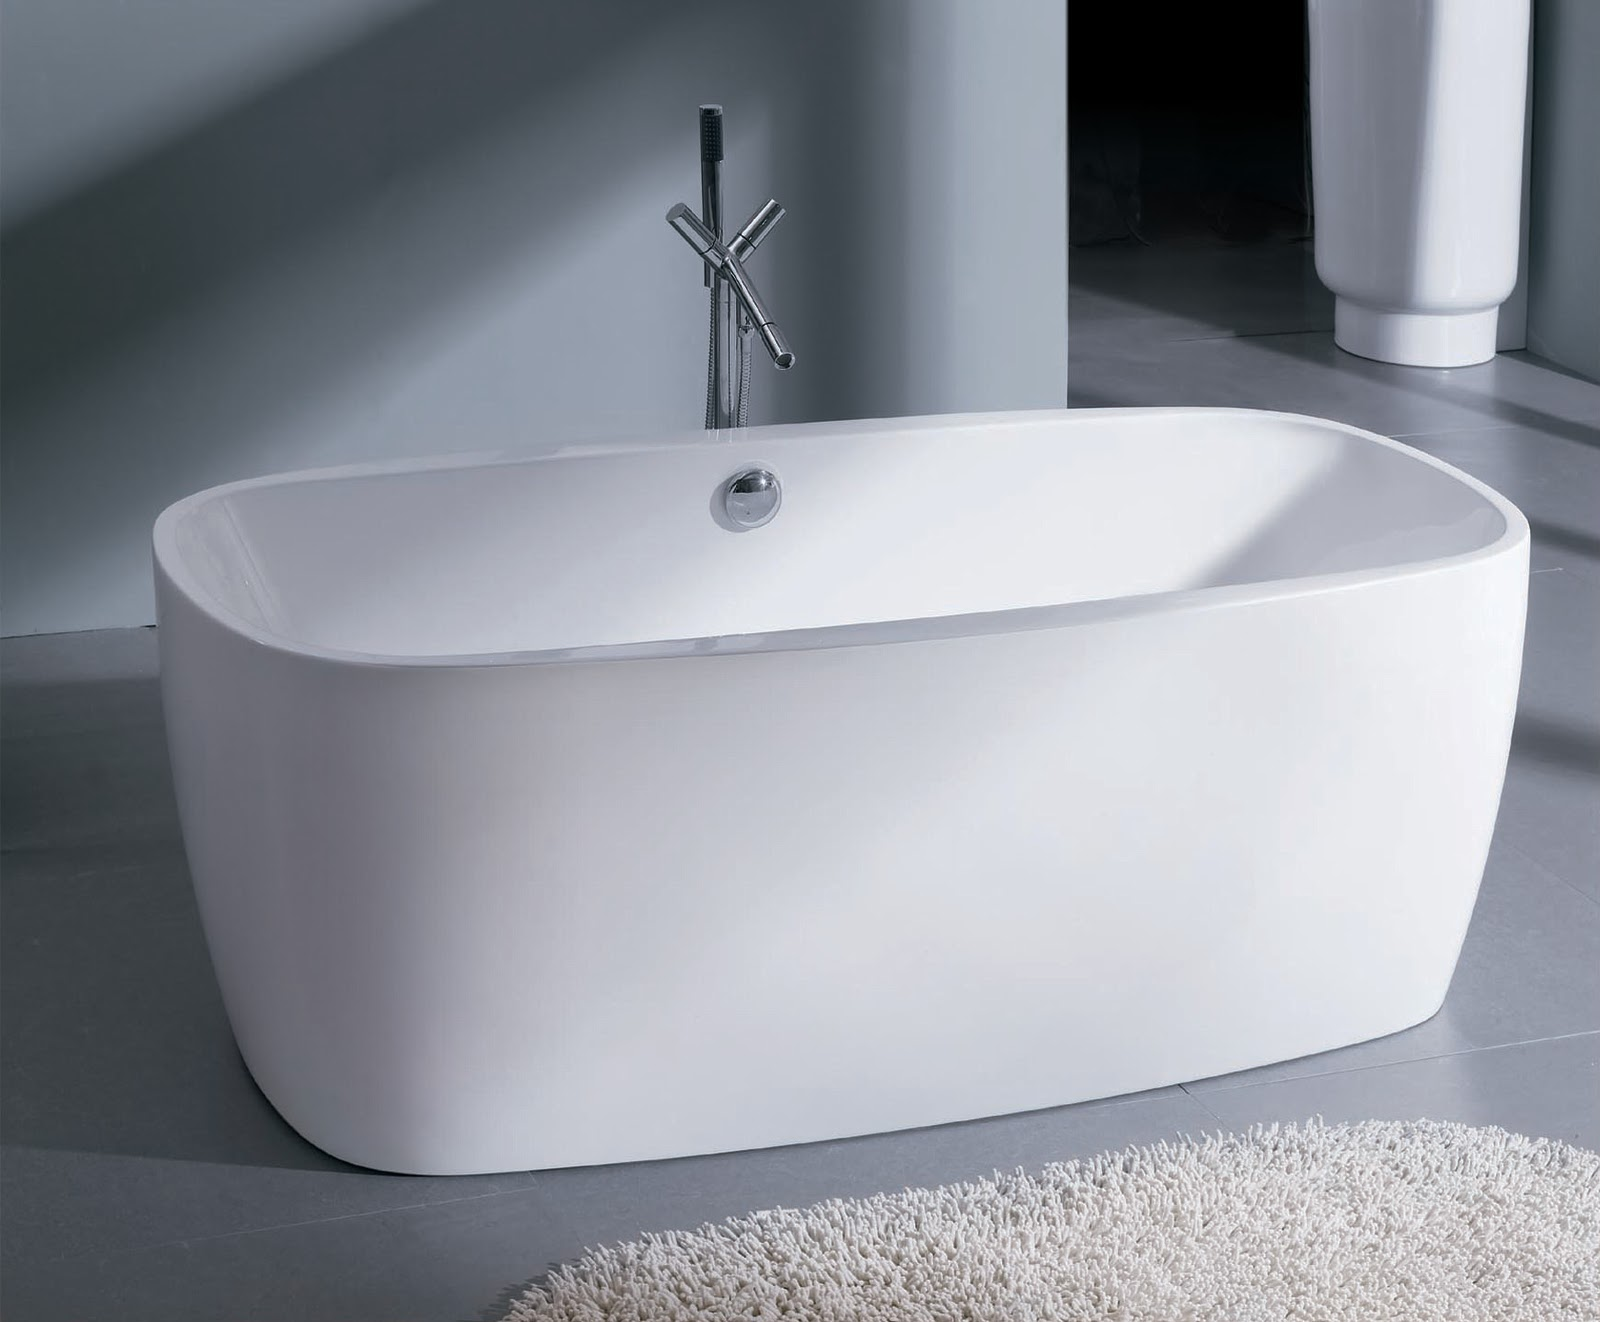 Tub of the week acrylic soaking tub premier bathtubs for Acrylic soaker tub